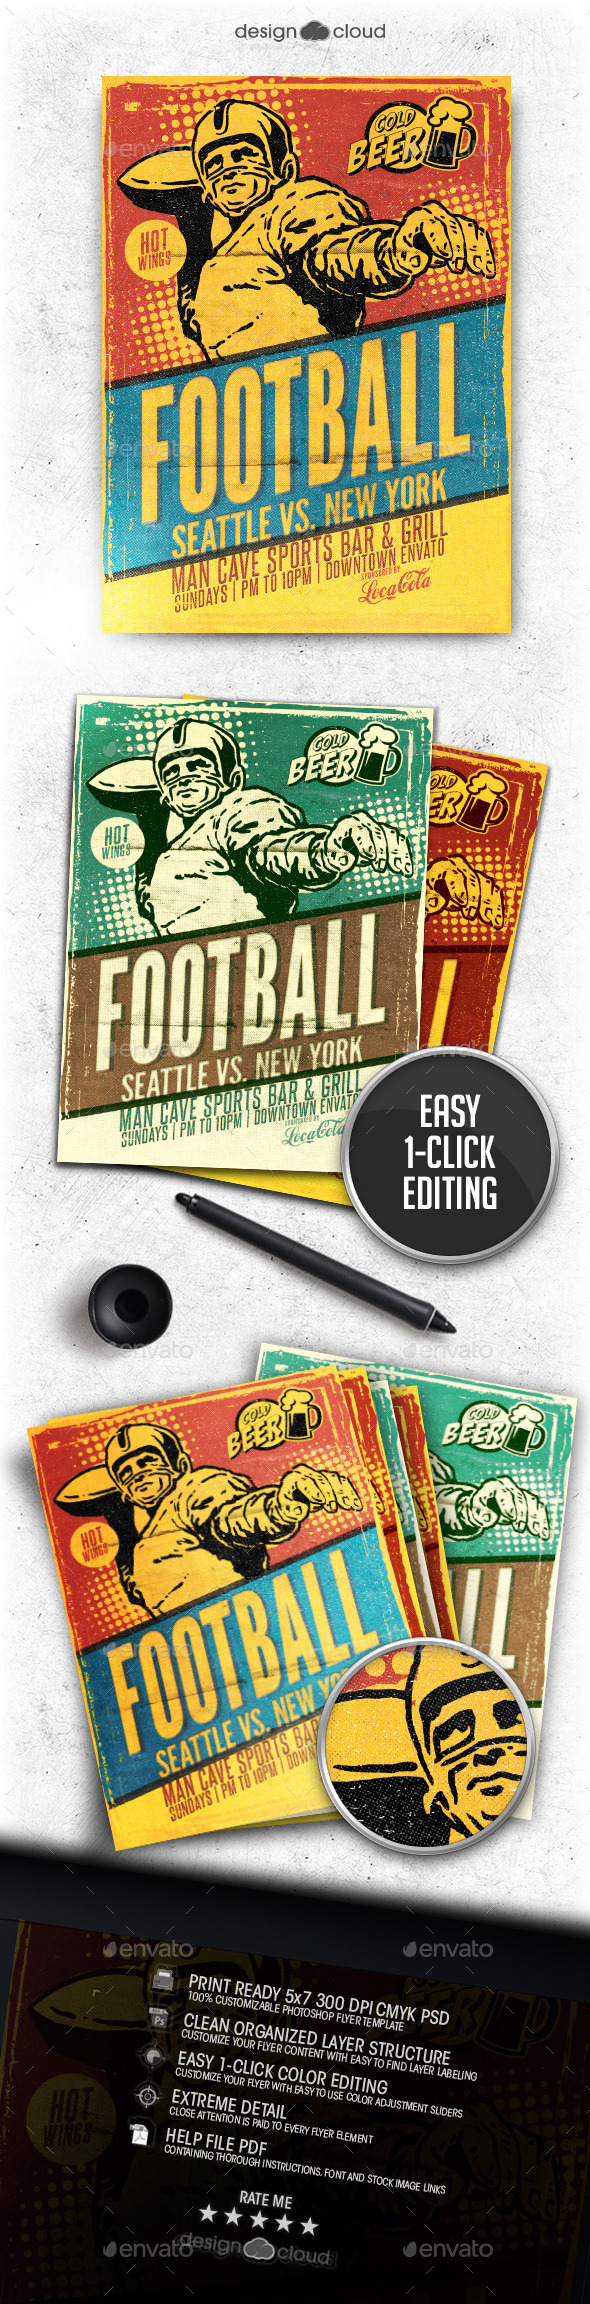 Retro Football Flyer Template - Sports Events